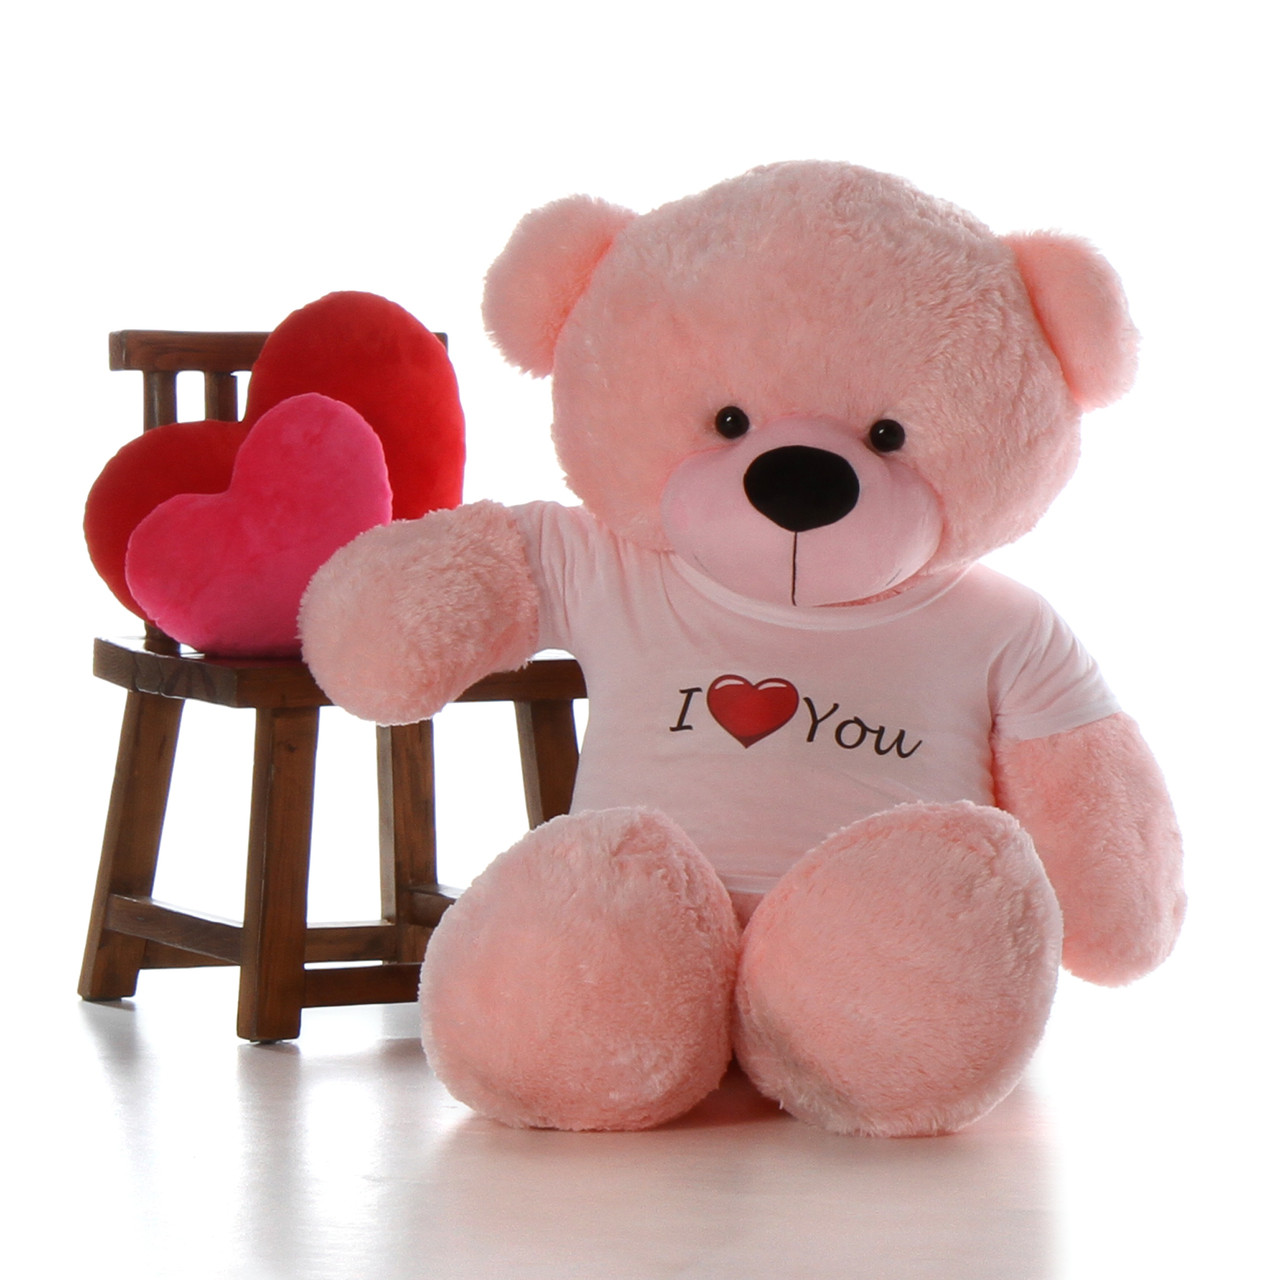 5ft Life Size Giant Teddy For Valentine S Day Pink Lady Cuddles With